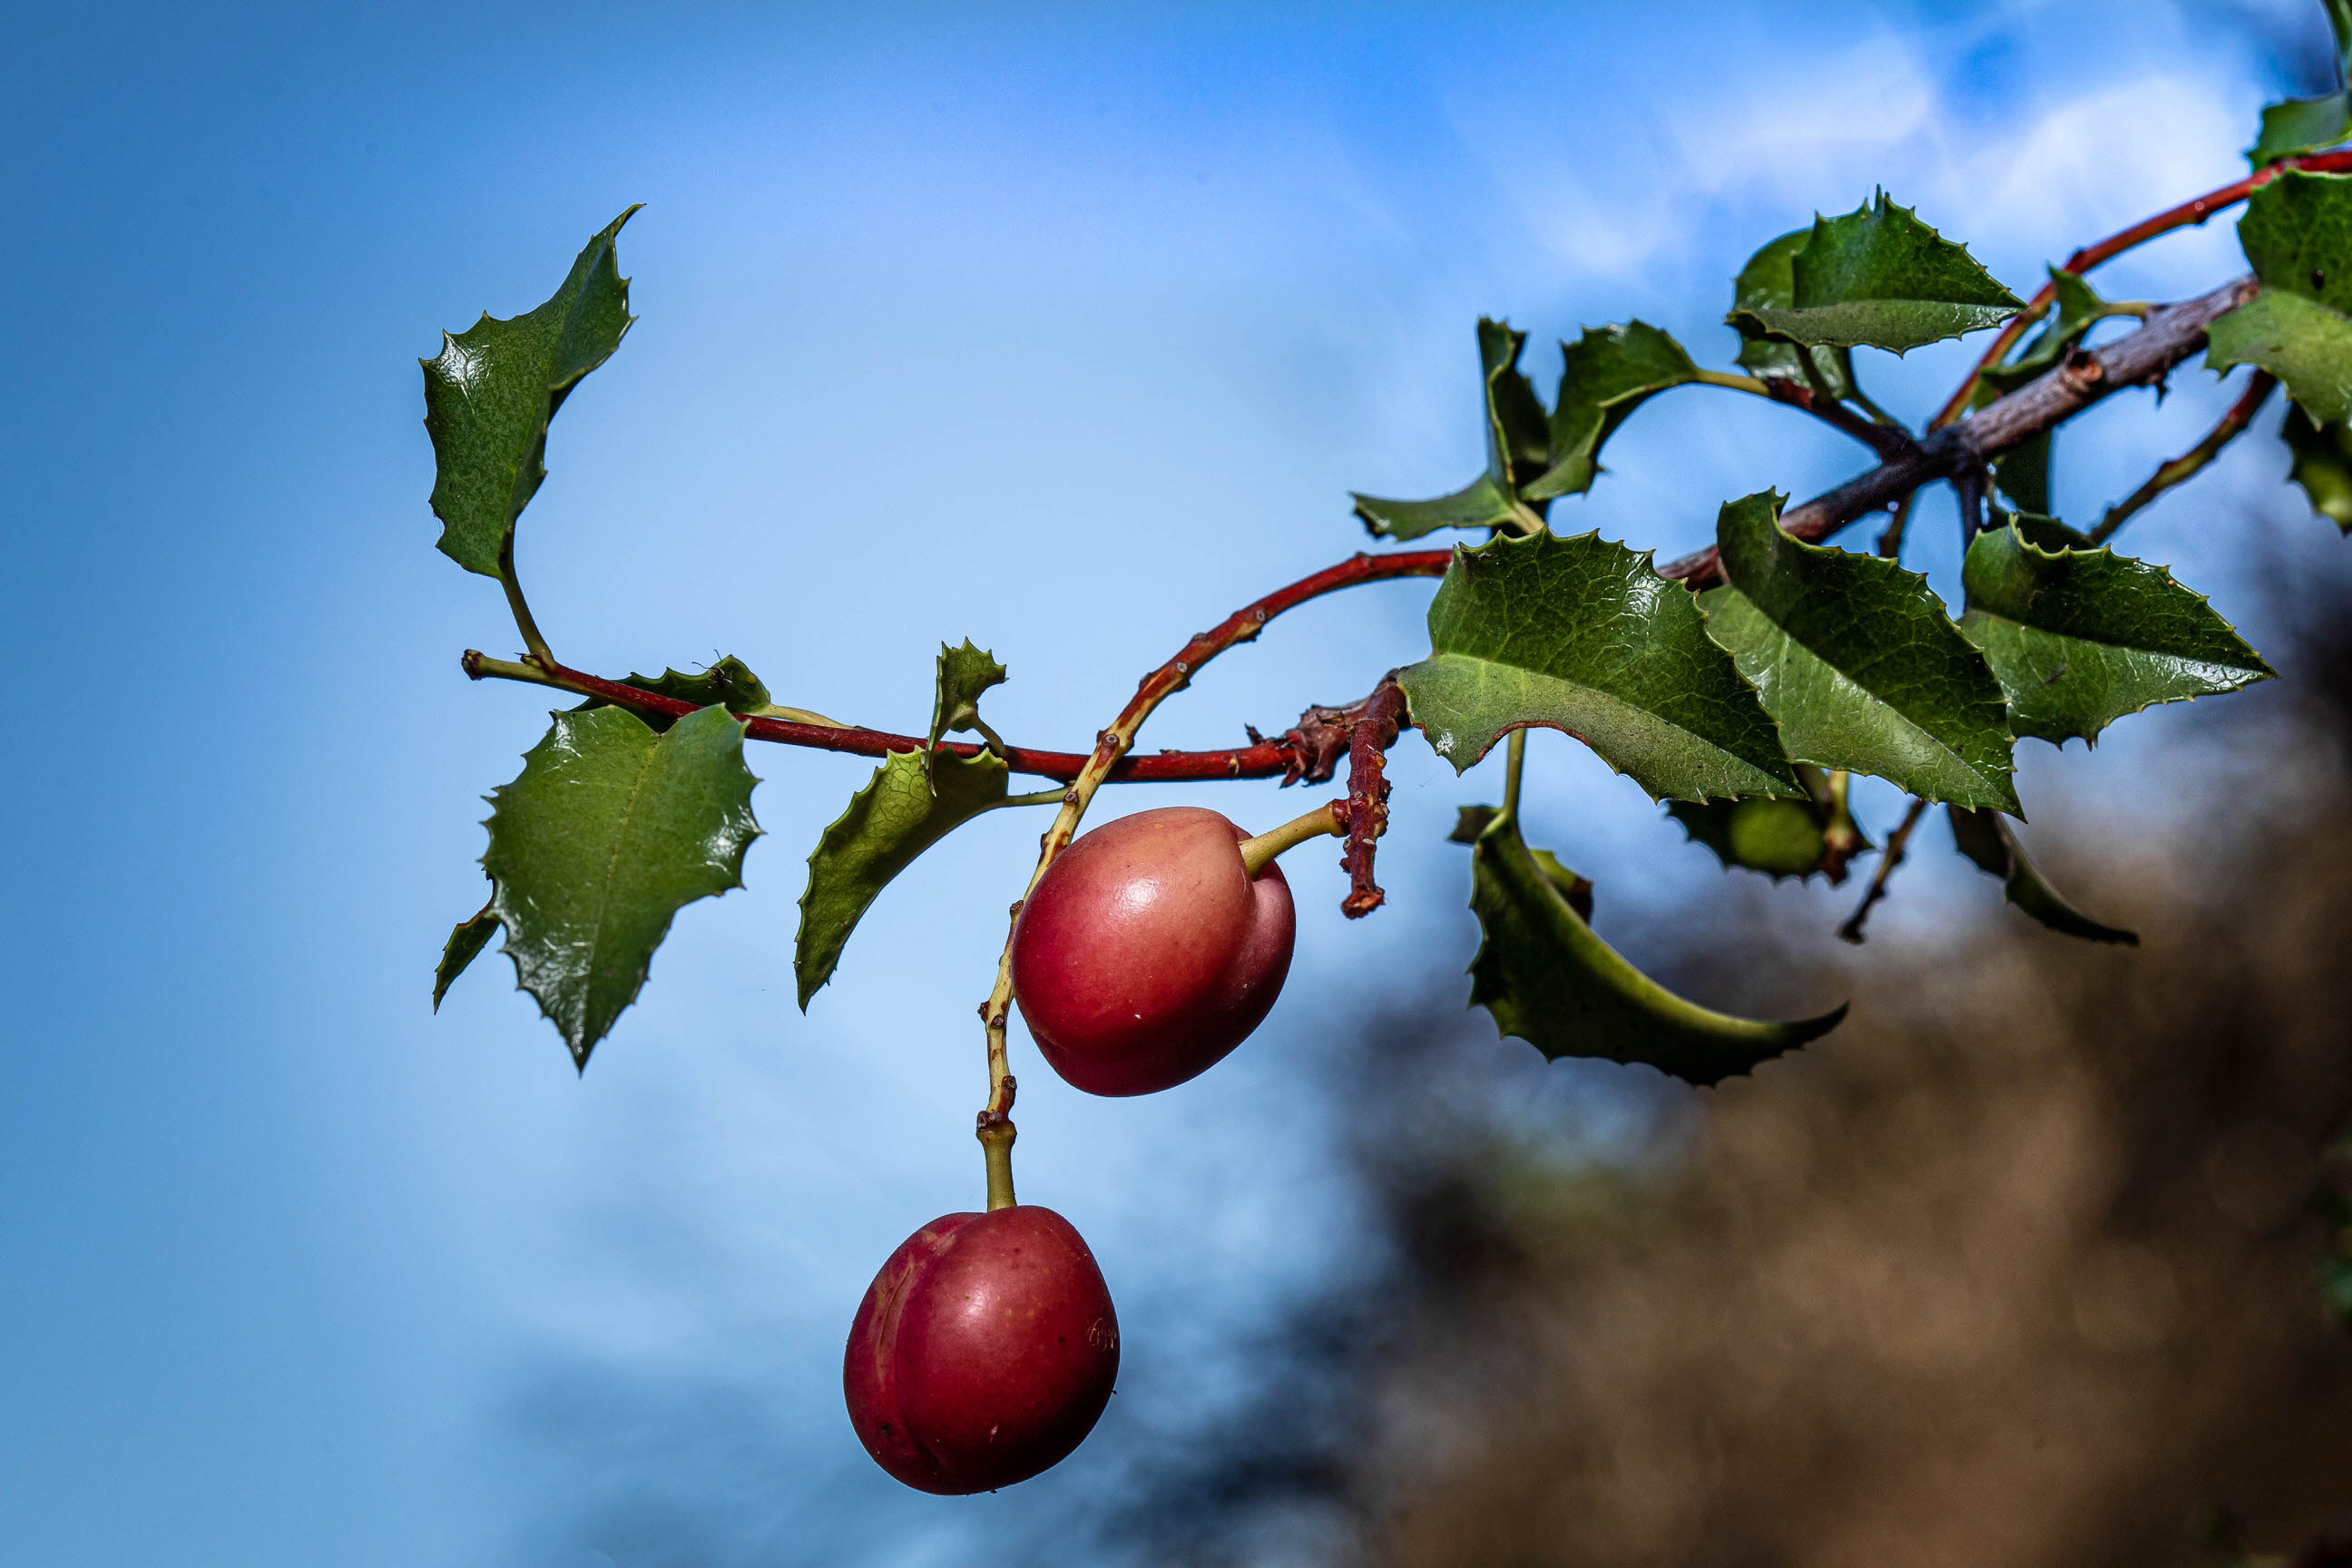 Apple-type fruit in the mountains